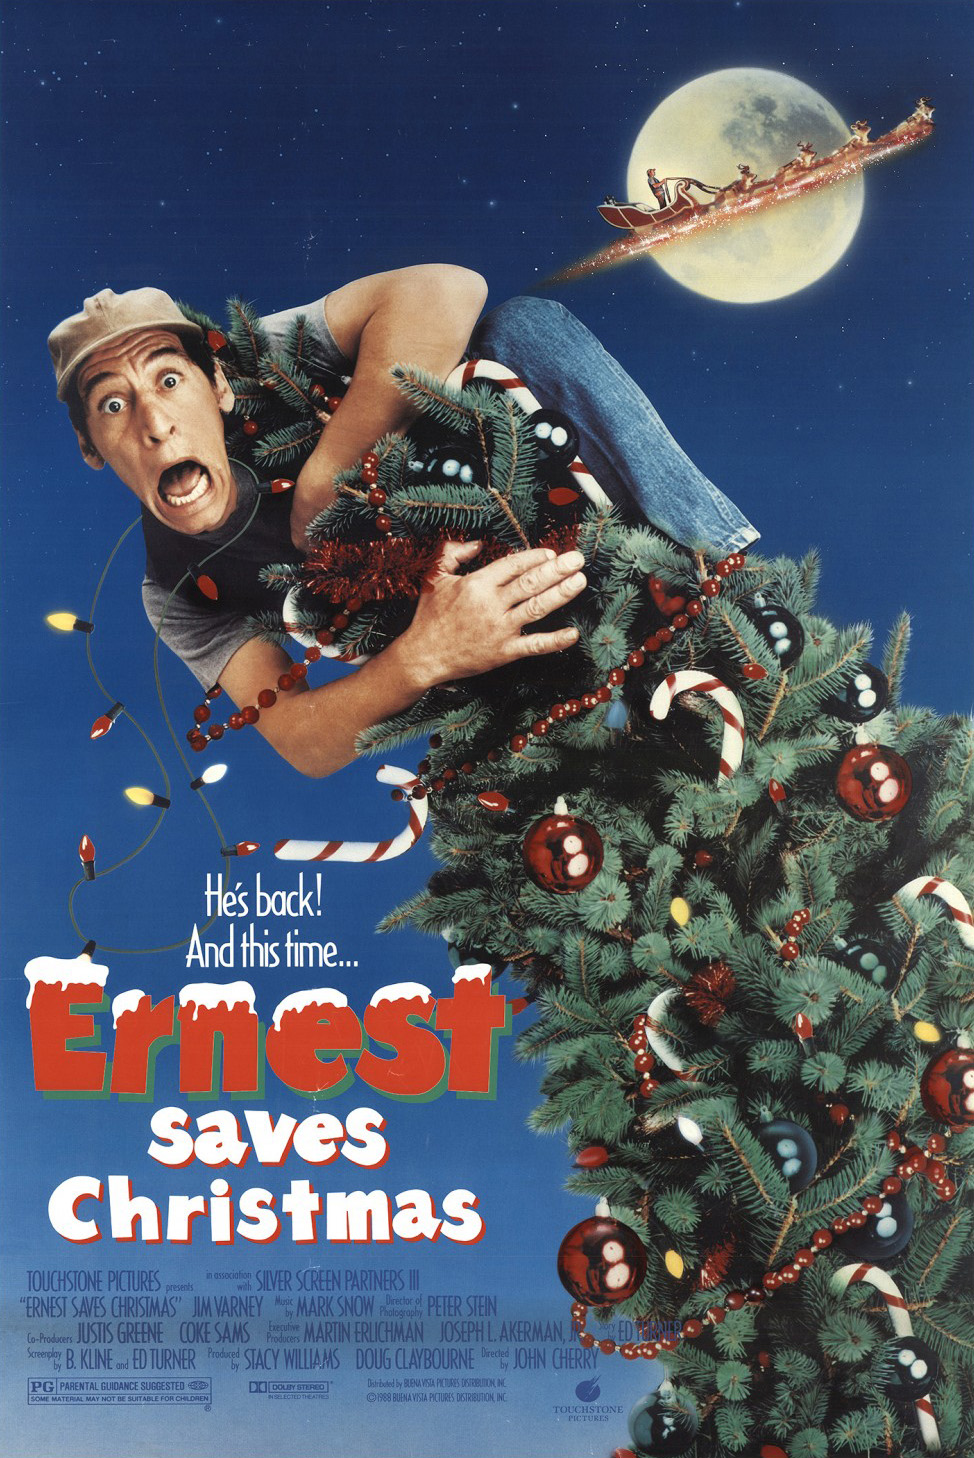 Ernest Saves Christmas 1988 Imdb